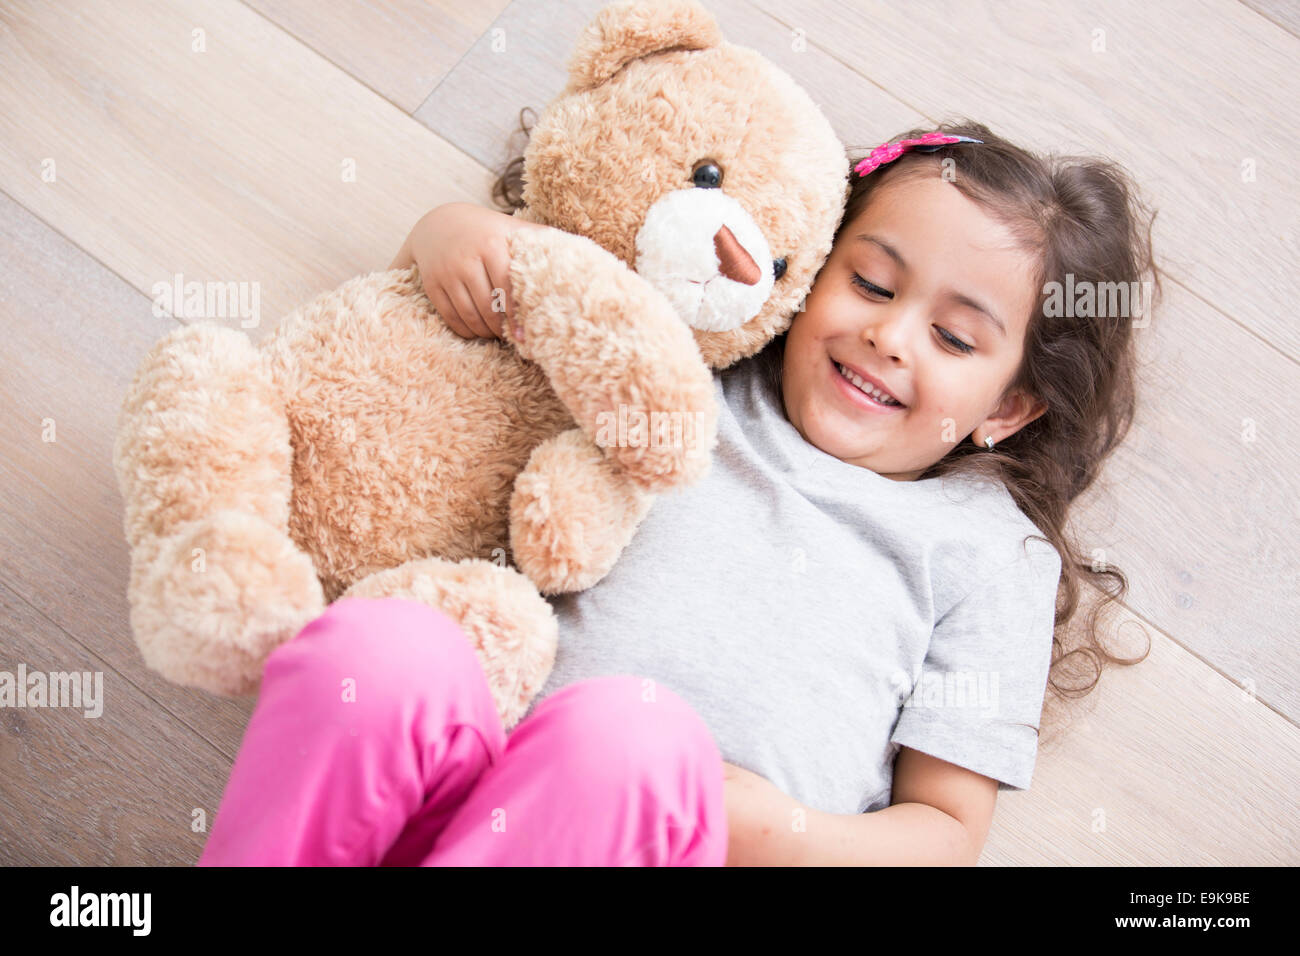 Girl with teddy bear lying on wooden floor at home - Stock Image